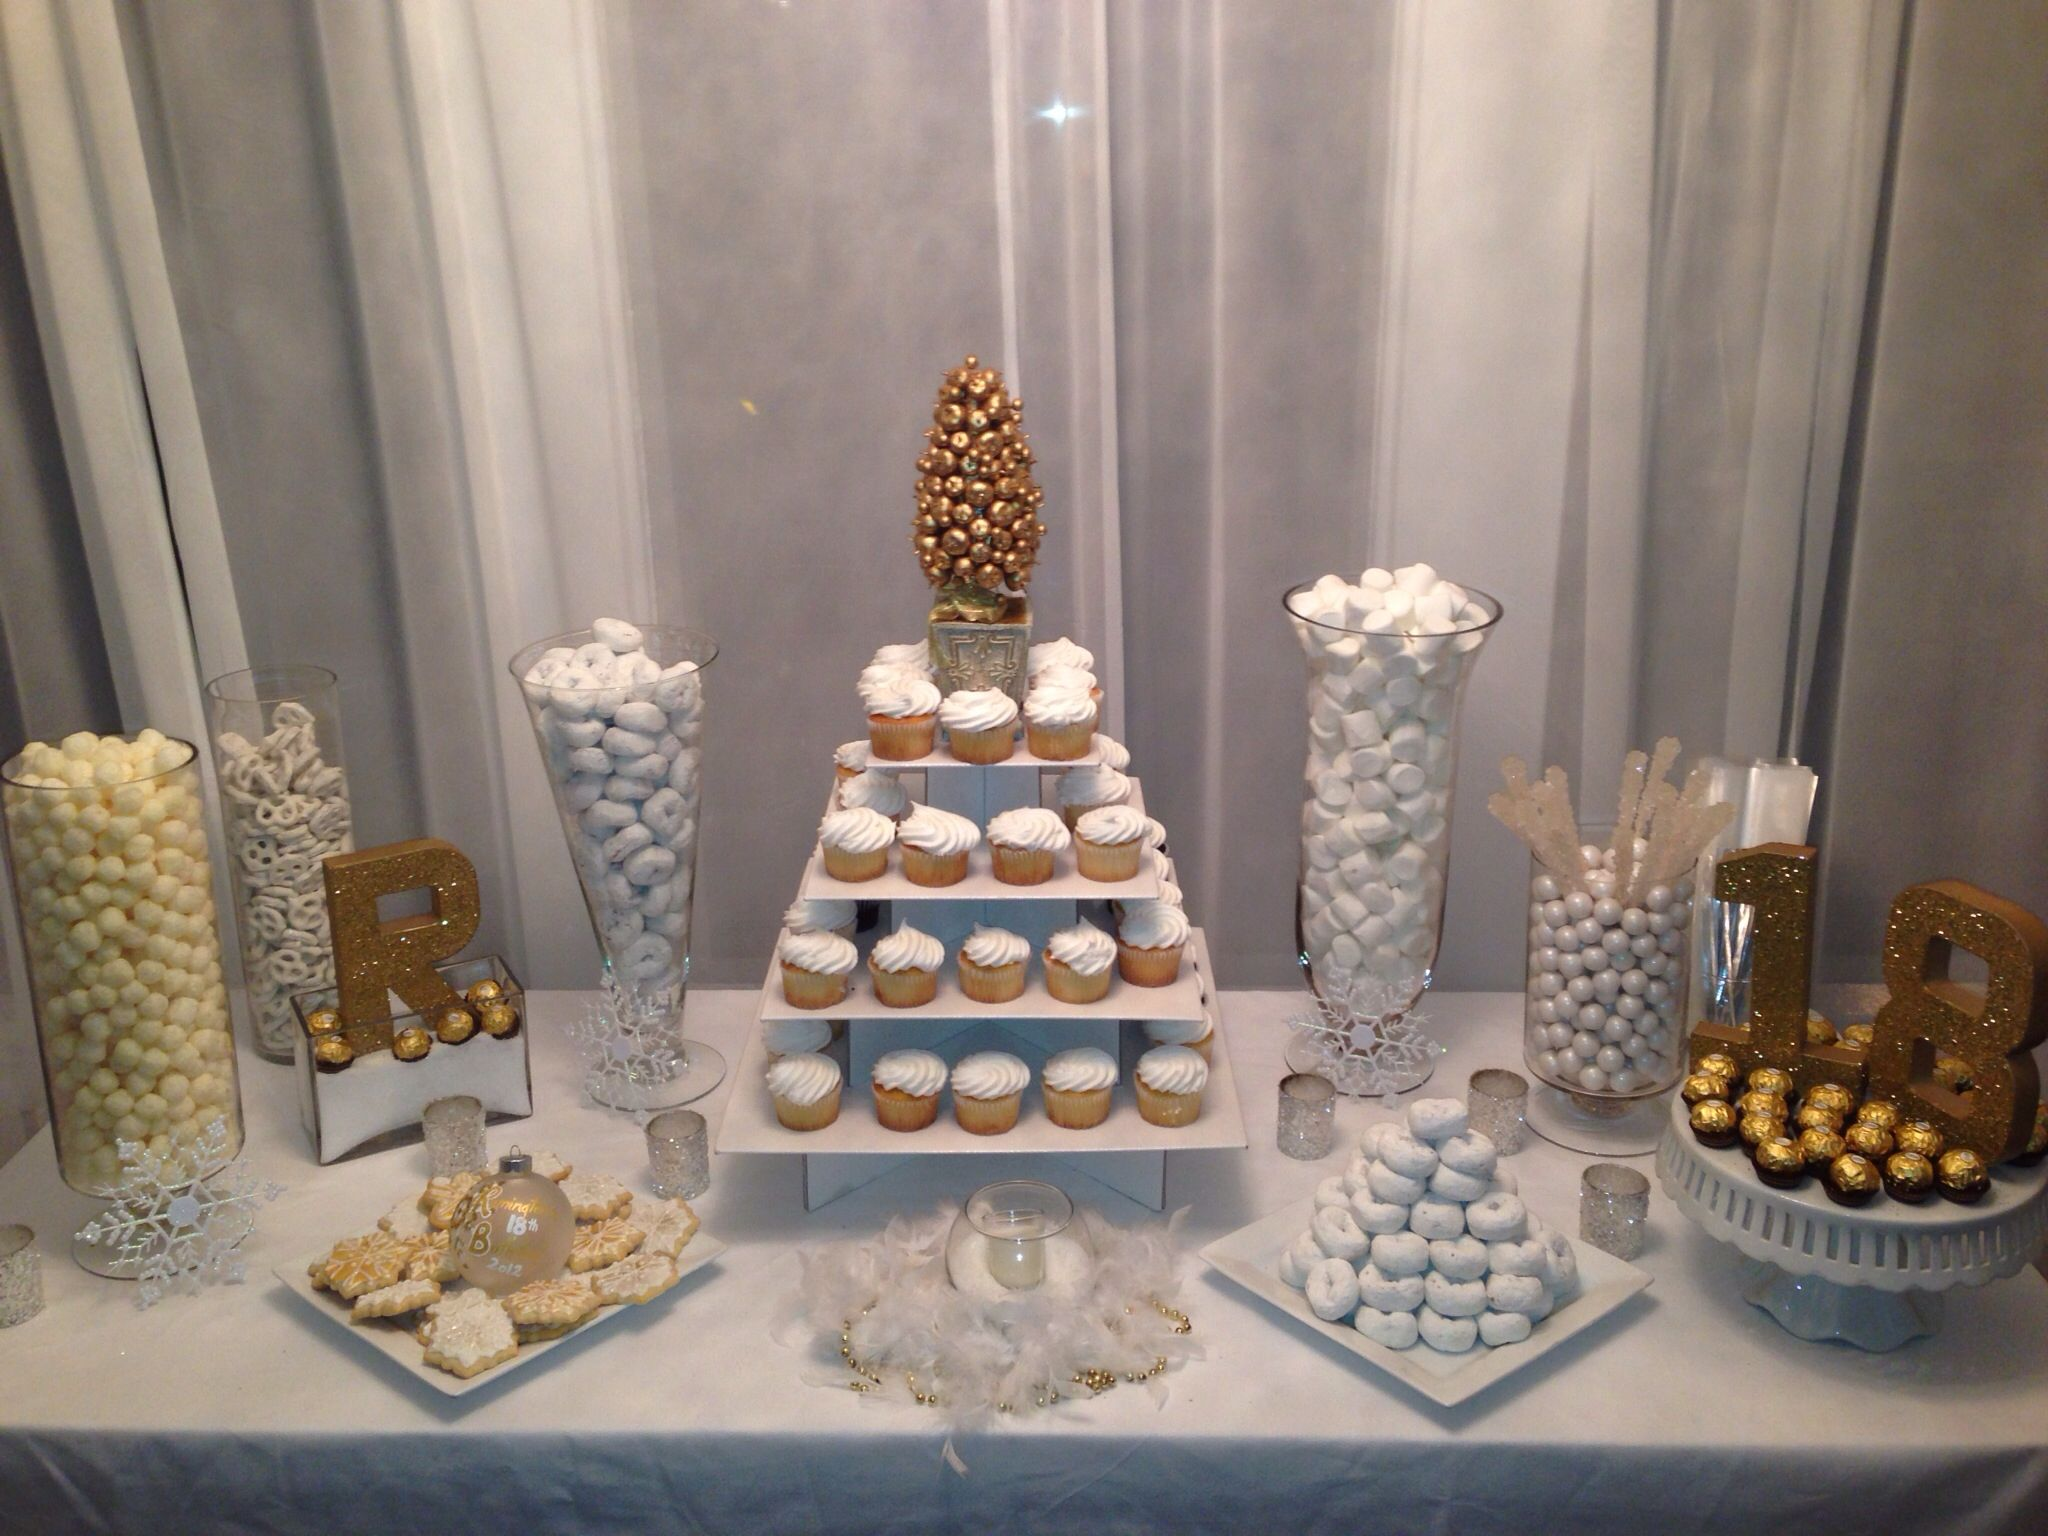 Winter Wonderland Event By Chloe Cook Events Birthday Party For Teens Winter Birthday Parties 16th Birthday Party